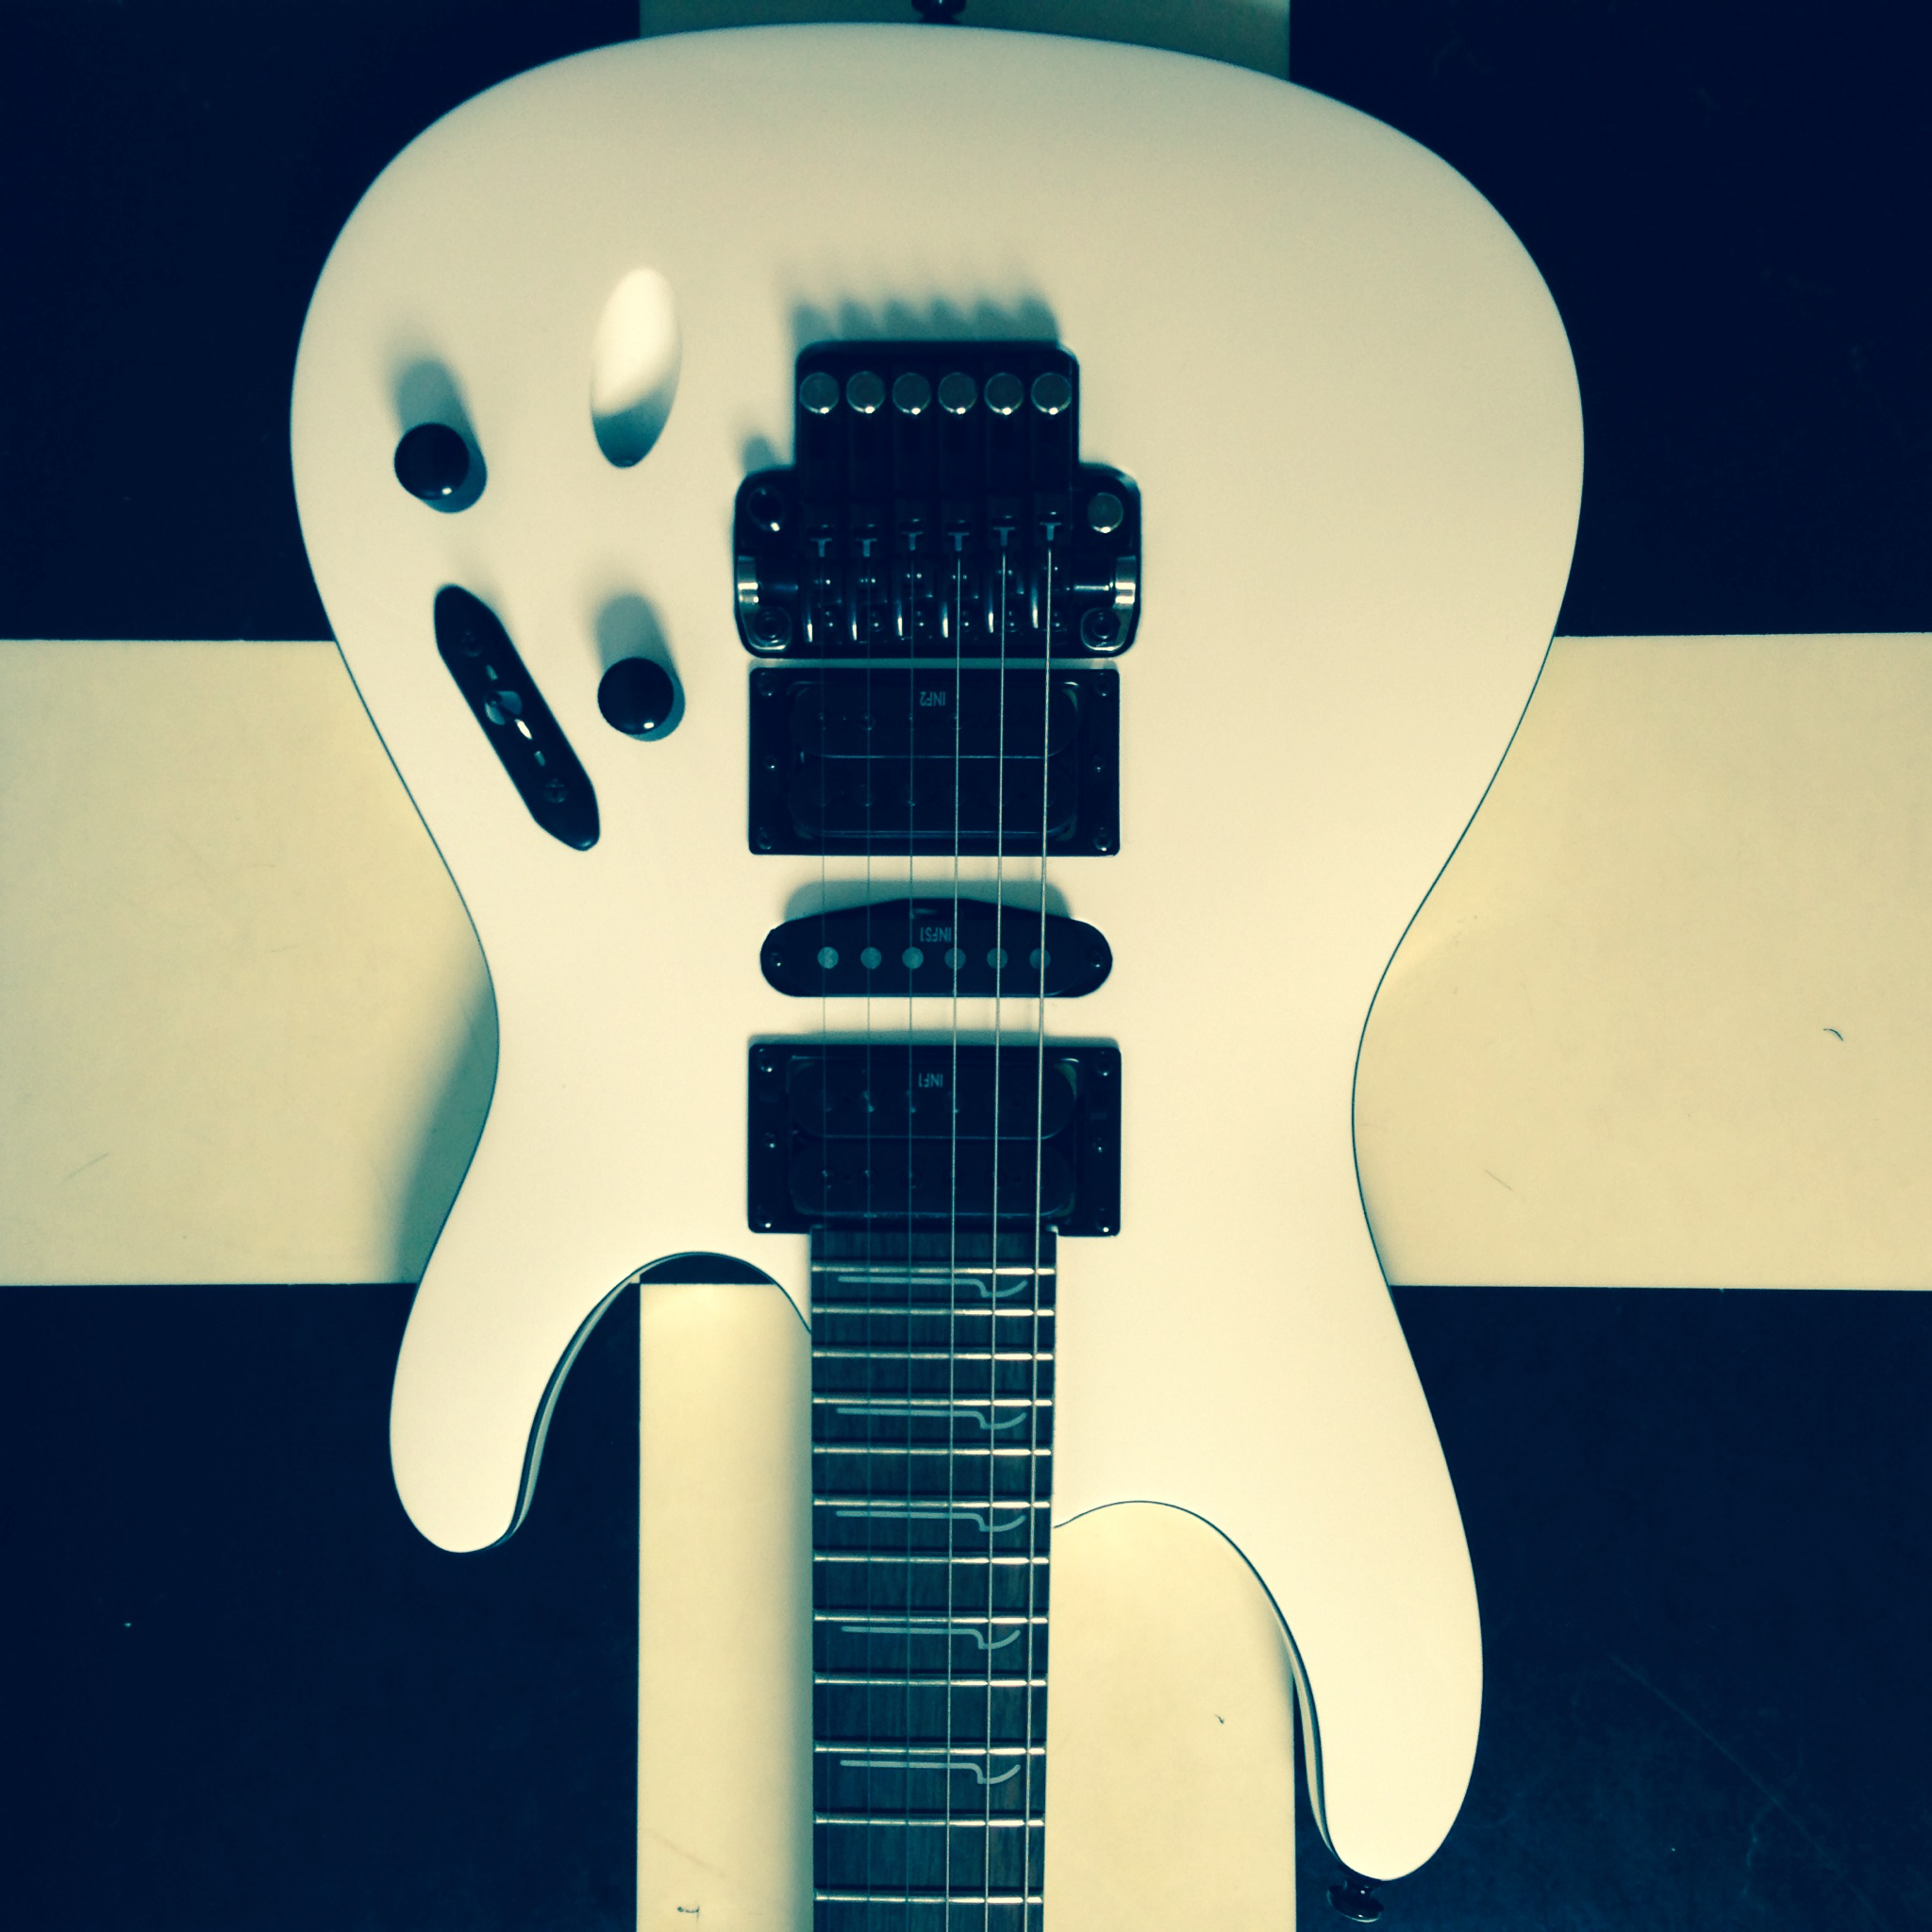 Ibanez-S-series-electric-guitar-white-model-S570B-body-The-Wong-Janice.JPG